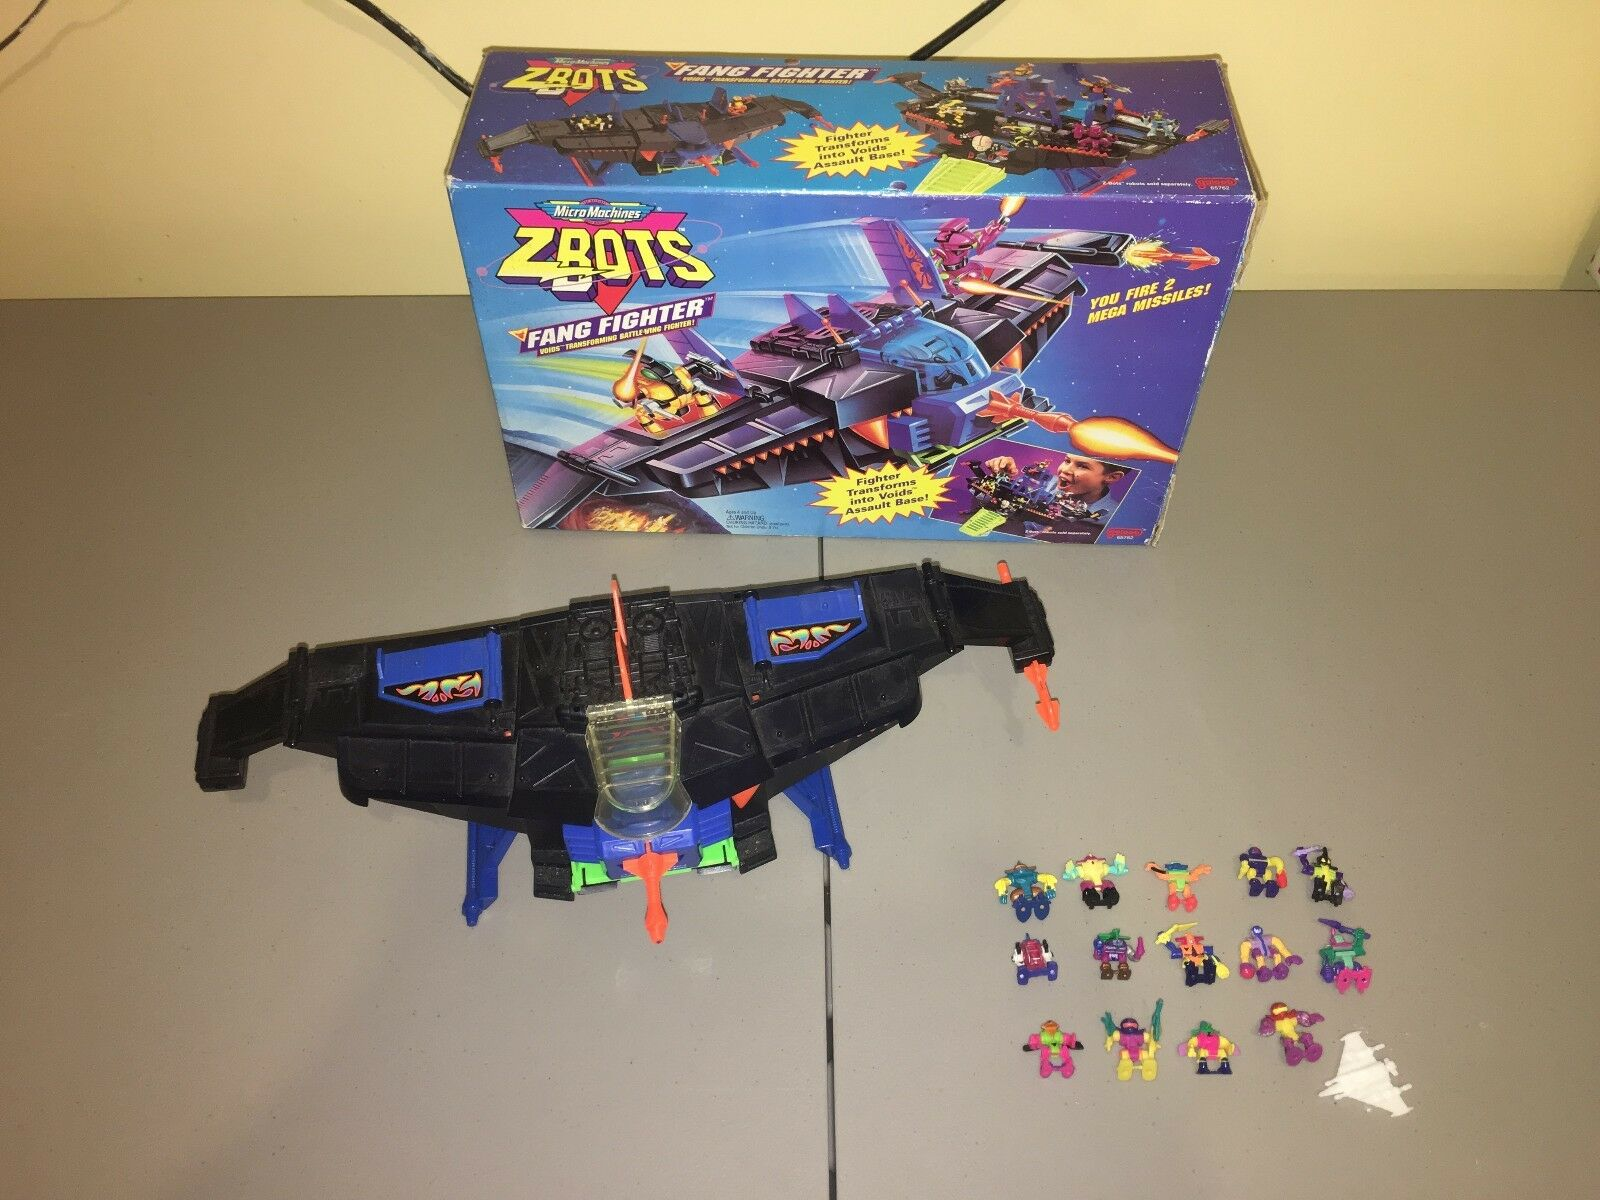 Lot of Z-Bot Figures + ZBot Fang Fighter Base w  box